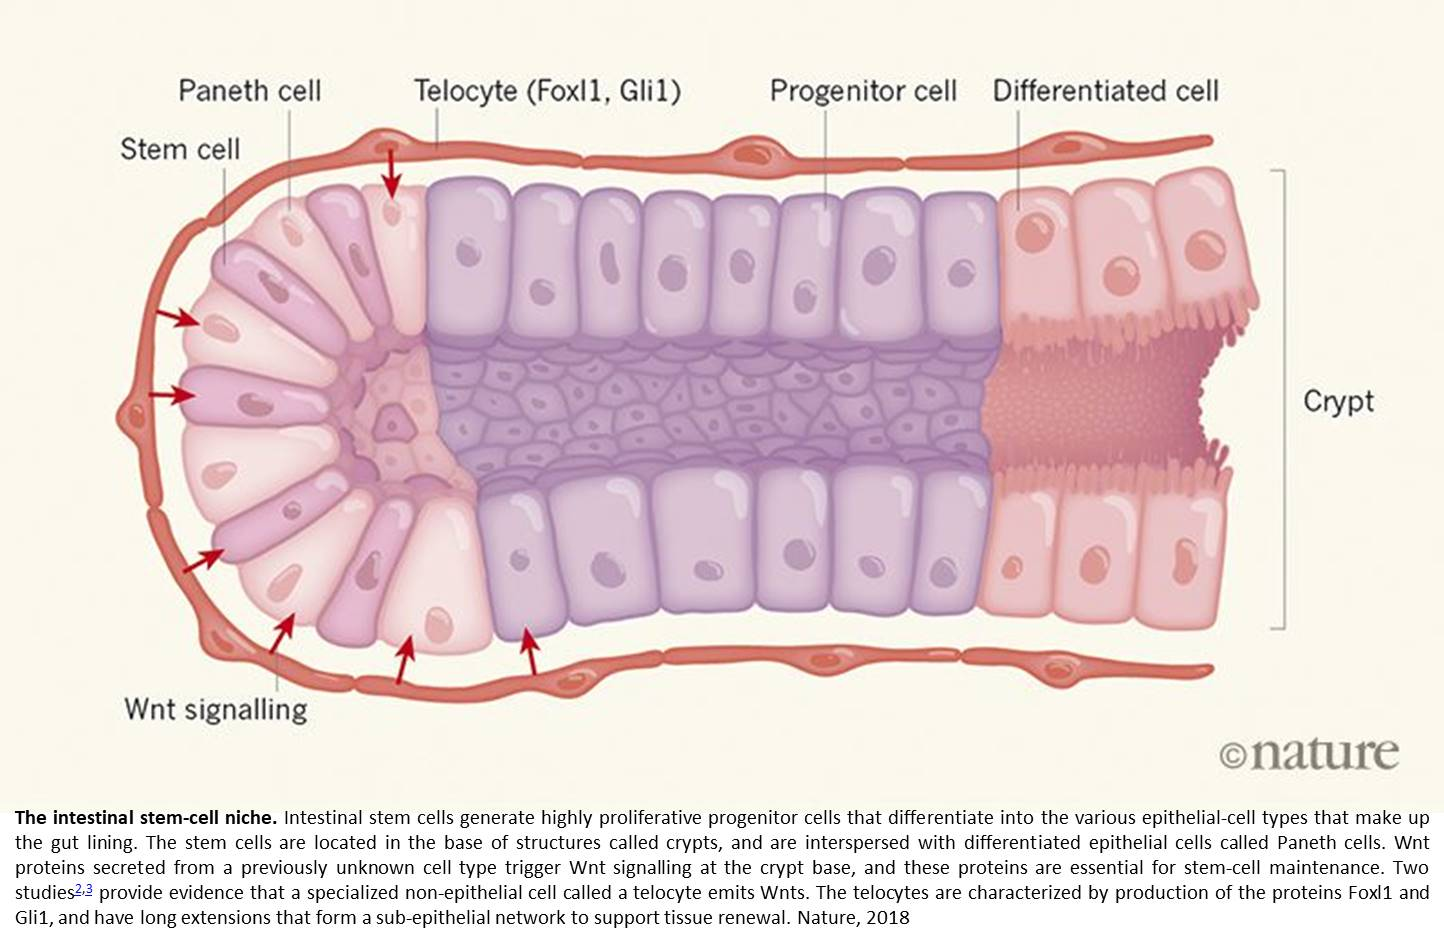 New understanding on stem cell niche in the intestine